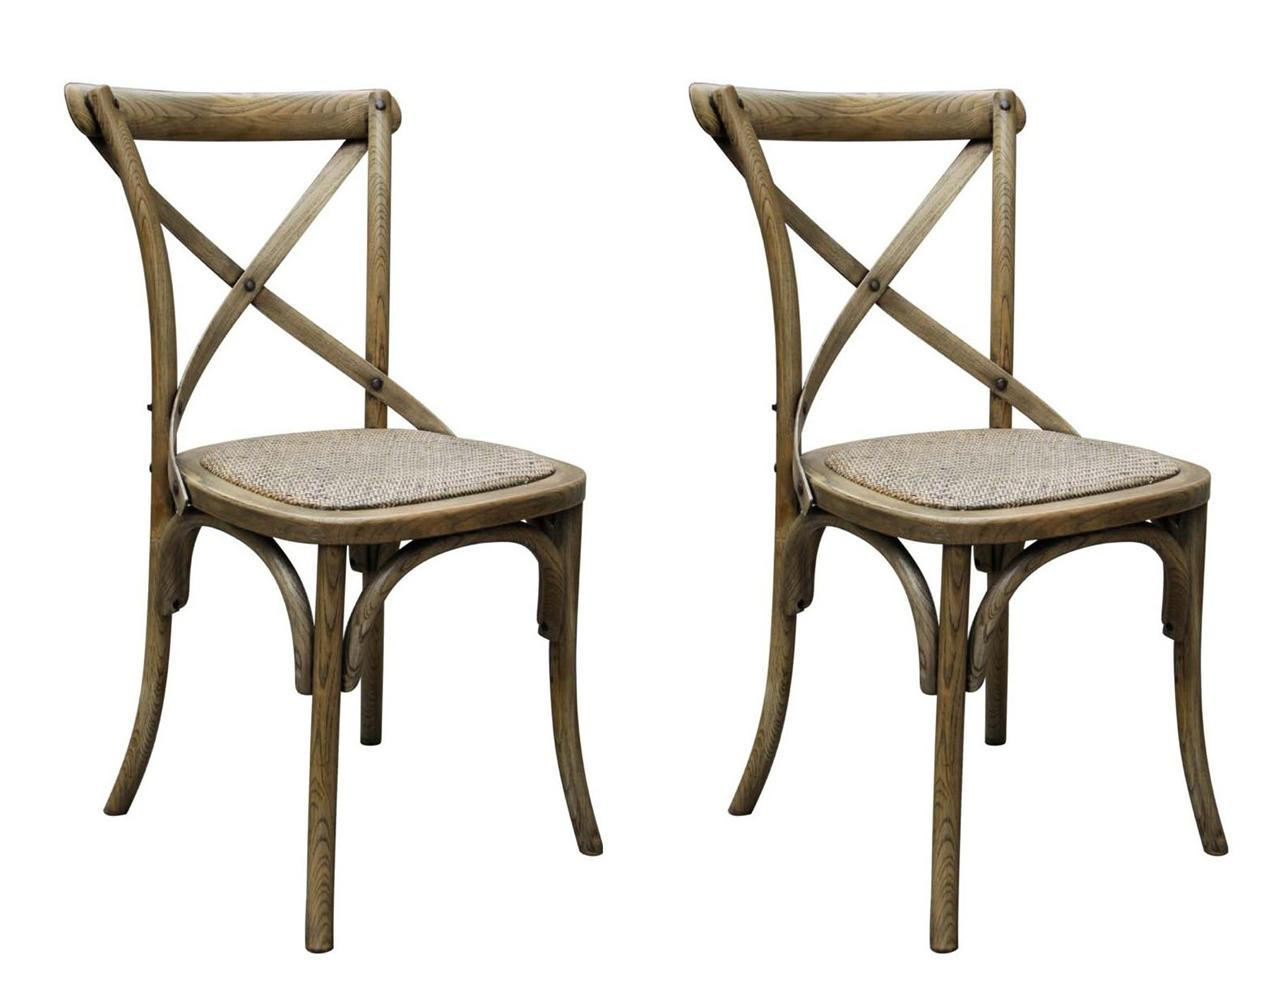 bistro style dining chairs plastic chair with oak legs set of 2 quotnoosa quot natural french timber